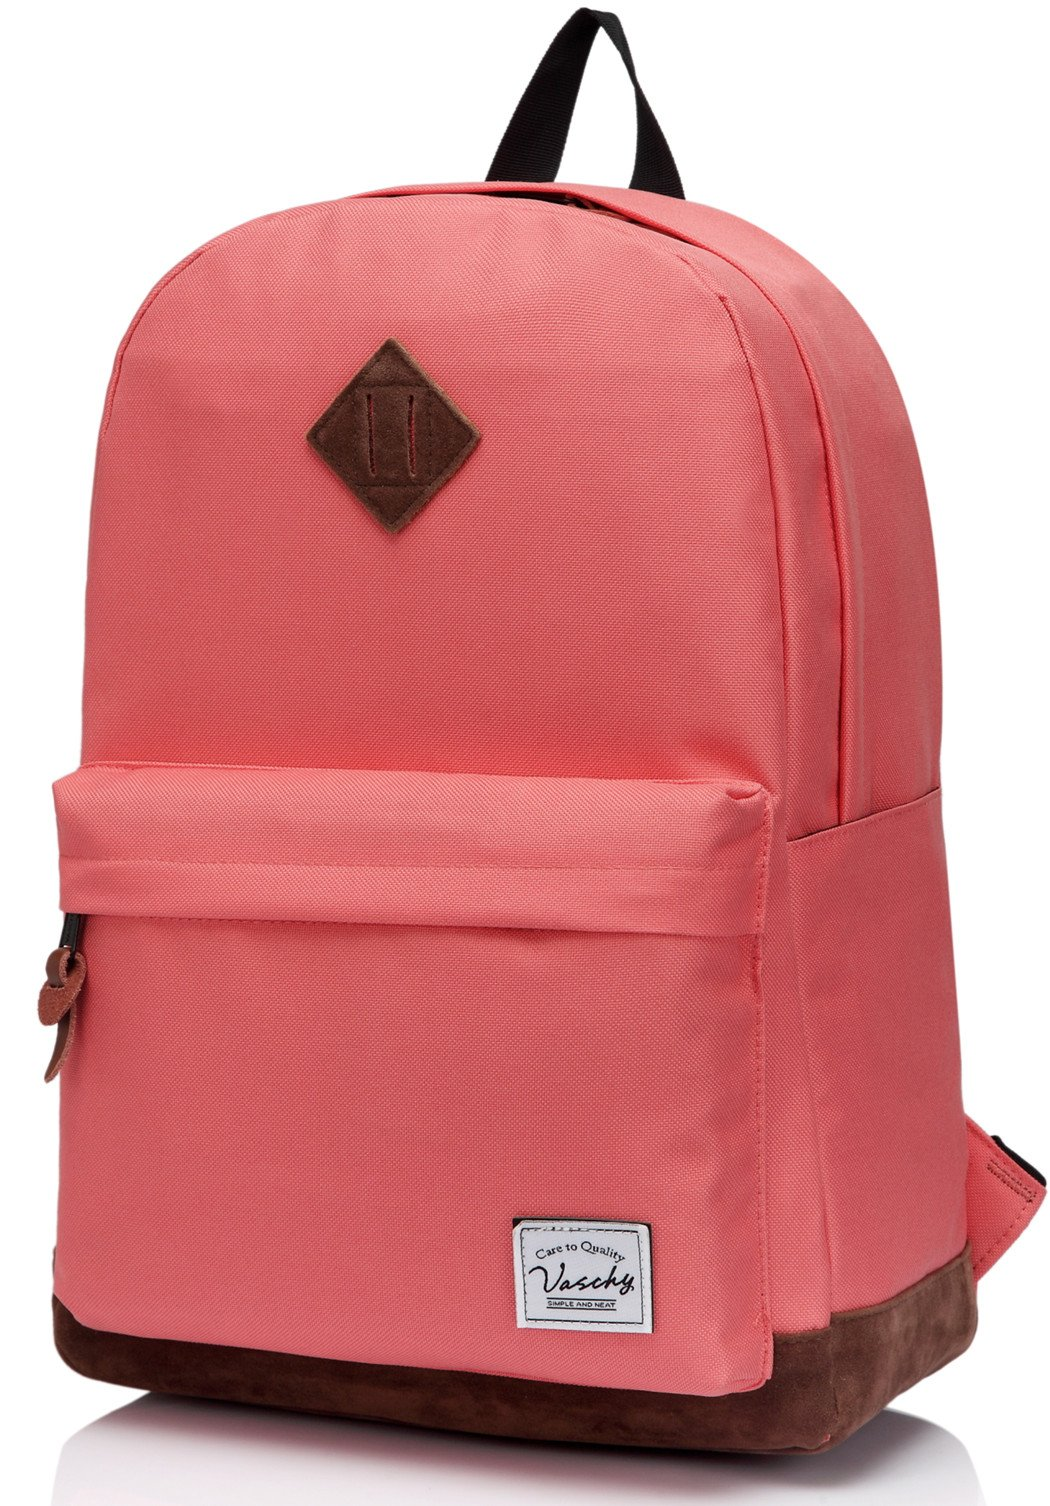 Vaschy School Backpack for Teens with 15 inch